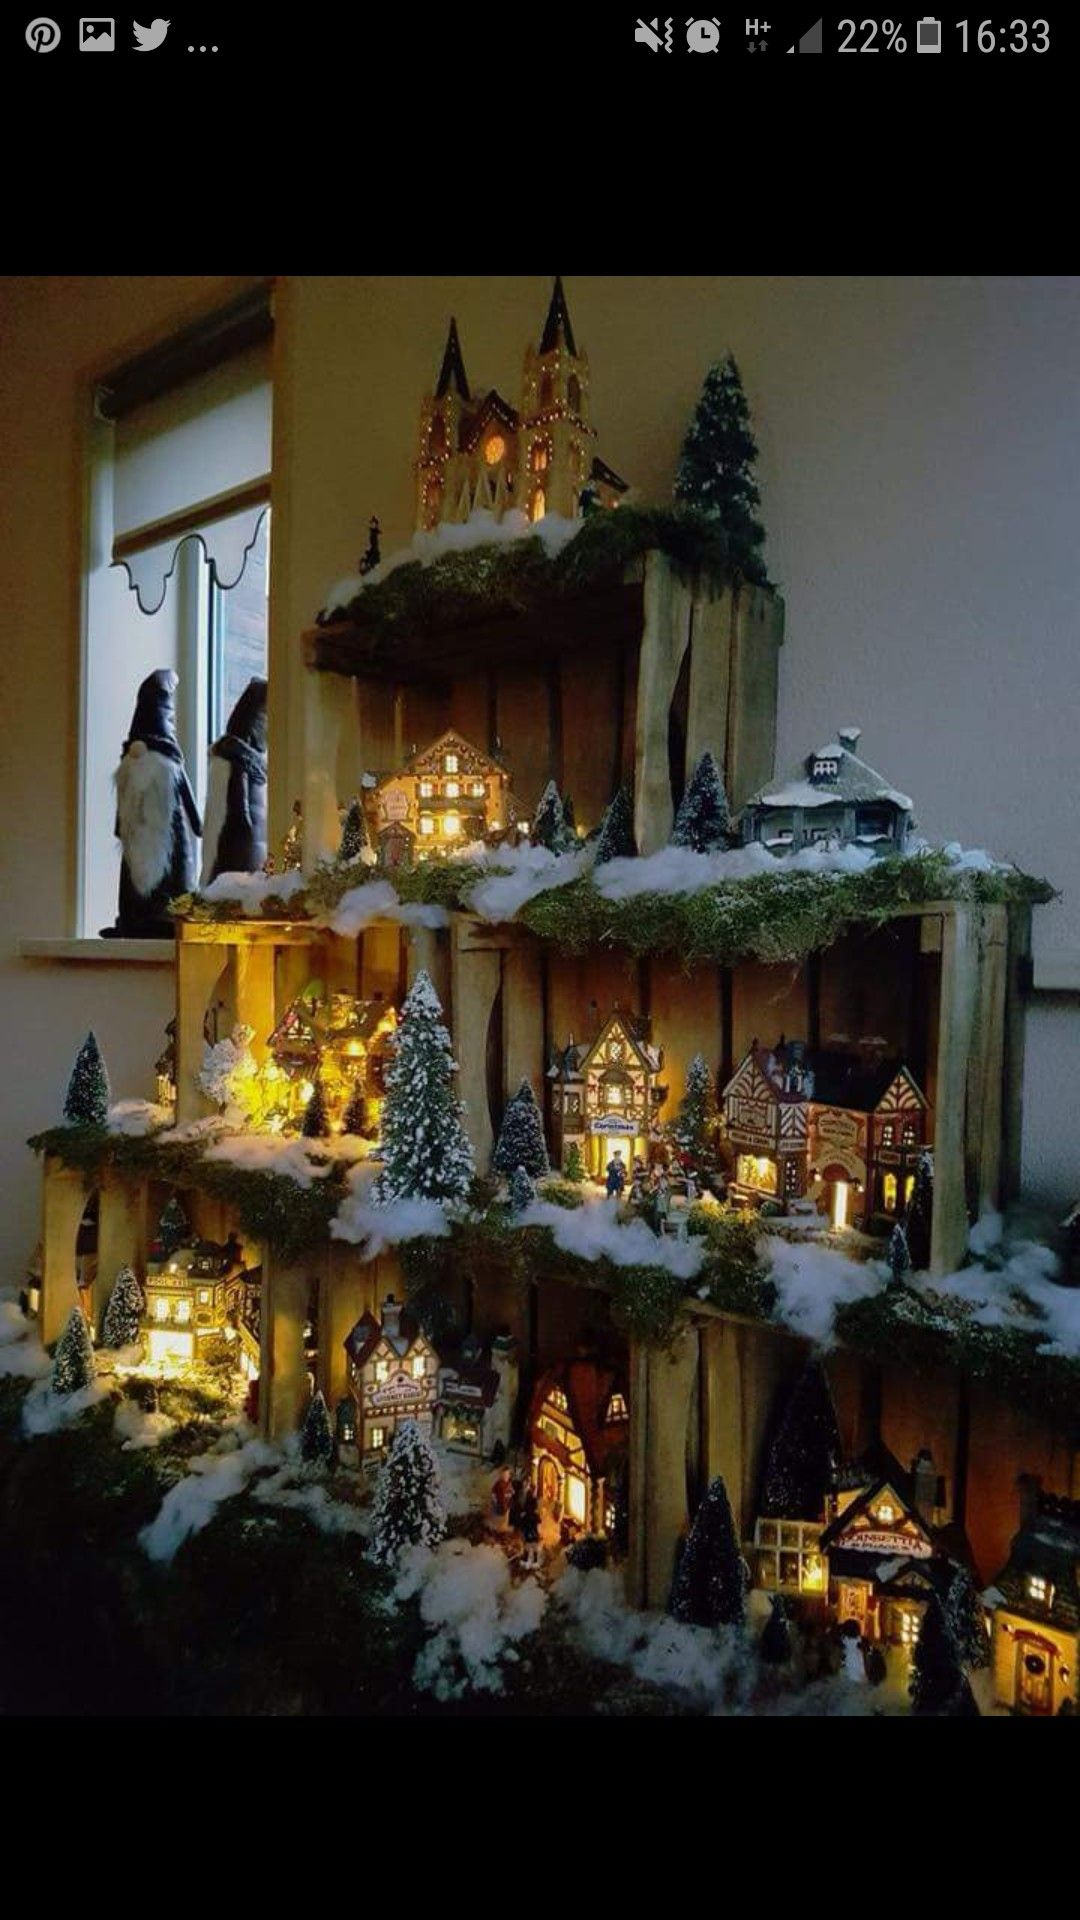 Wood Crates Used As A Display Case For A Christmas Village Unusual Christmas Decorations Christmas Village Display Christmas Deco